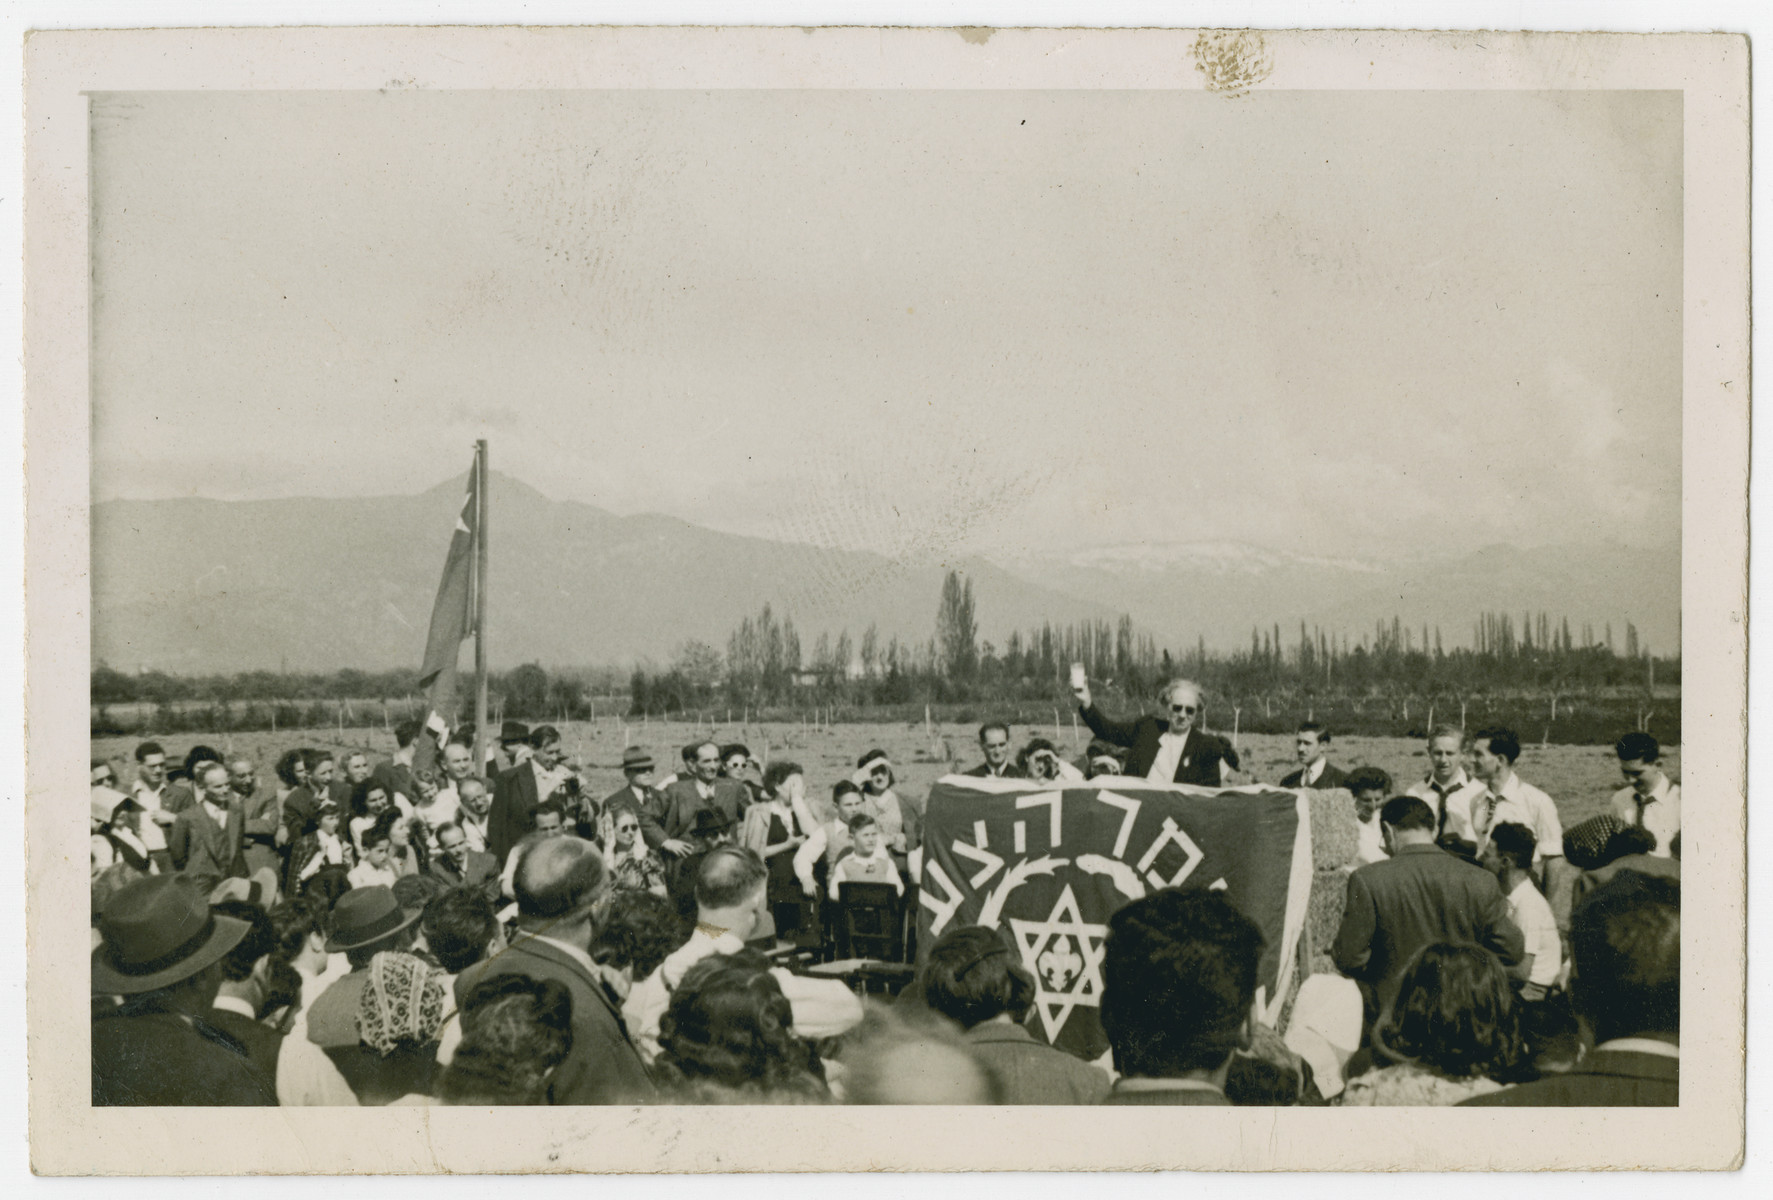 """Photograph from an album entitled, """"Hacshara Kidma Chile,""""  documenting life on a postwar Shomer Hatzair Zionist agricultural collective in Chile.  A speaker addresses the crowd at the inauguration of the hachshara."""